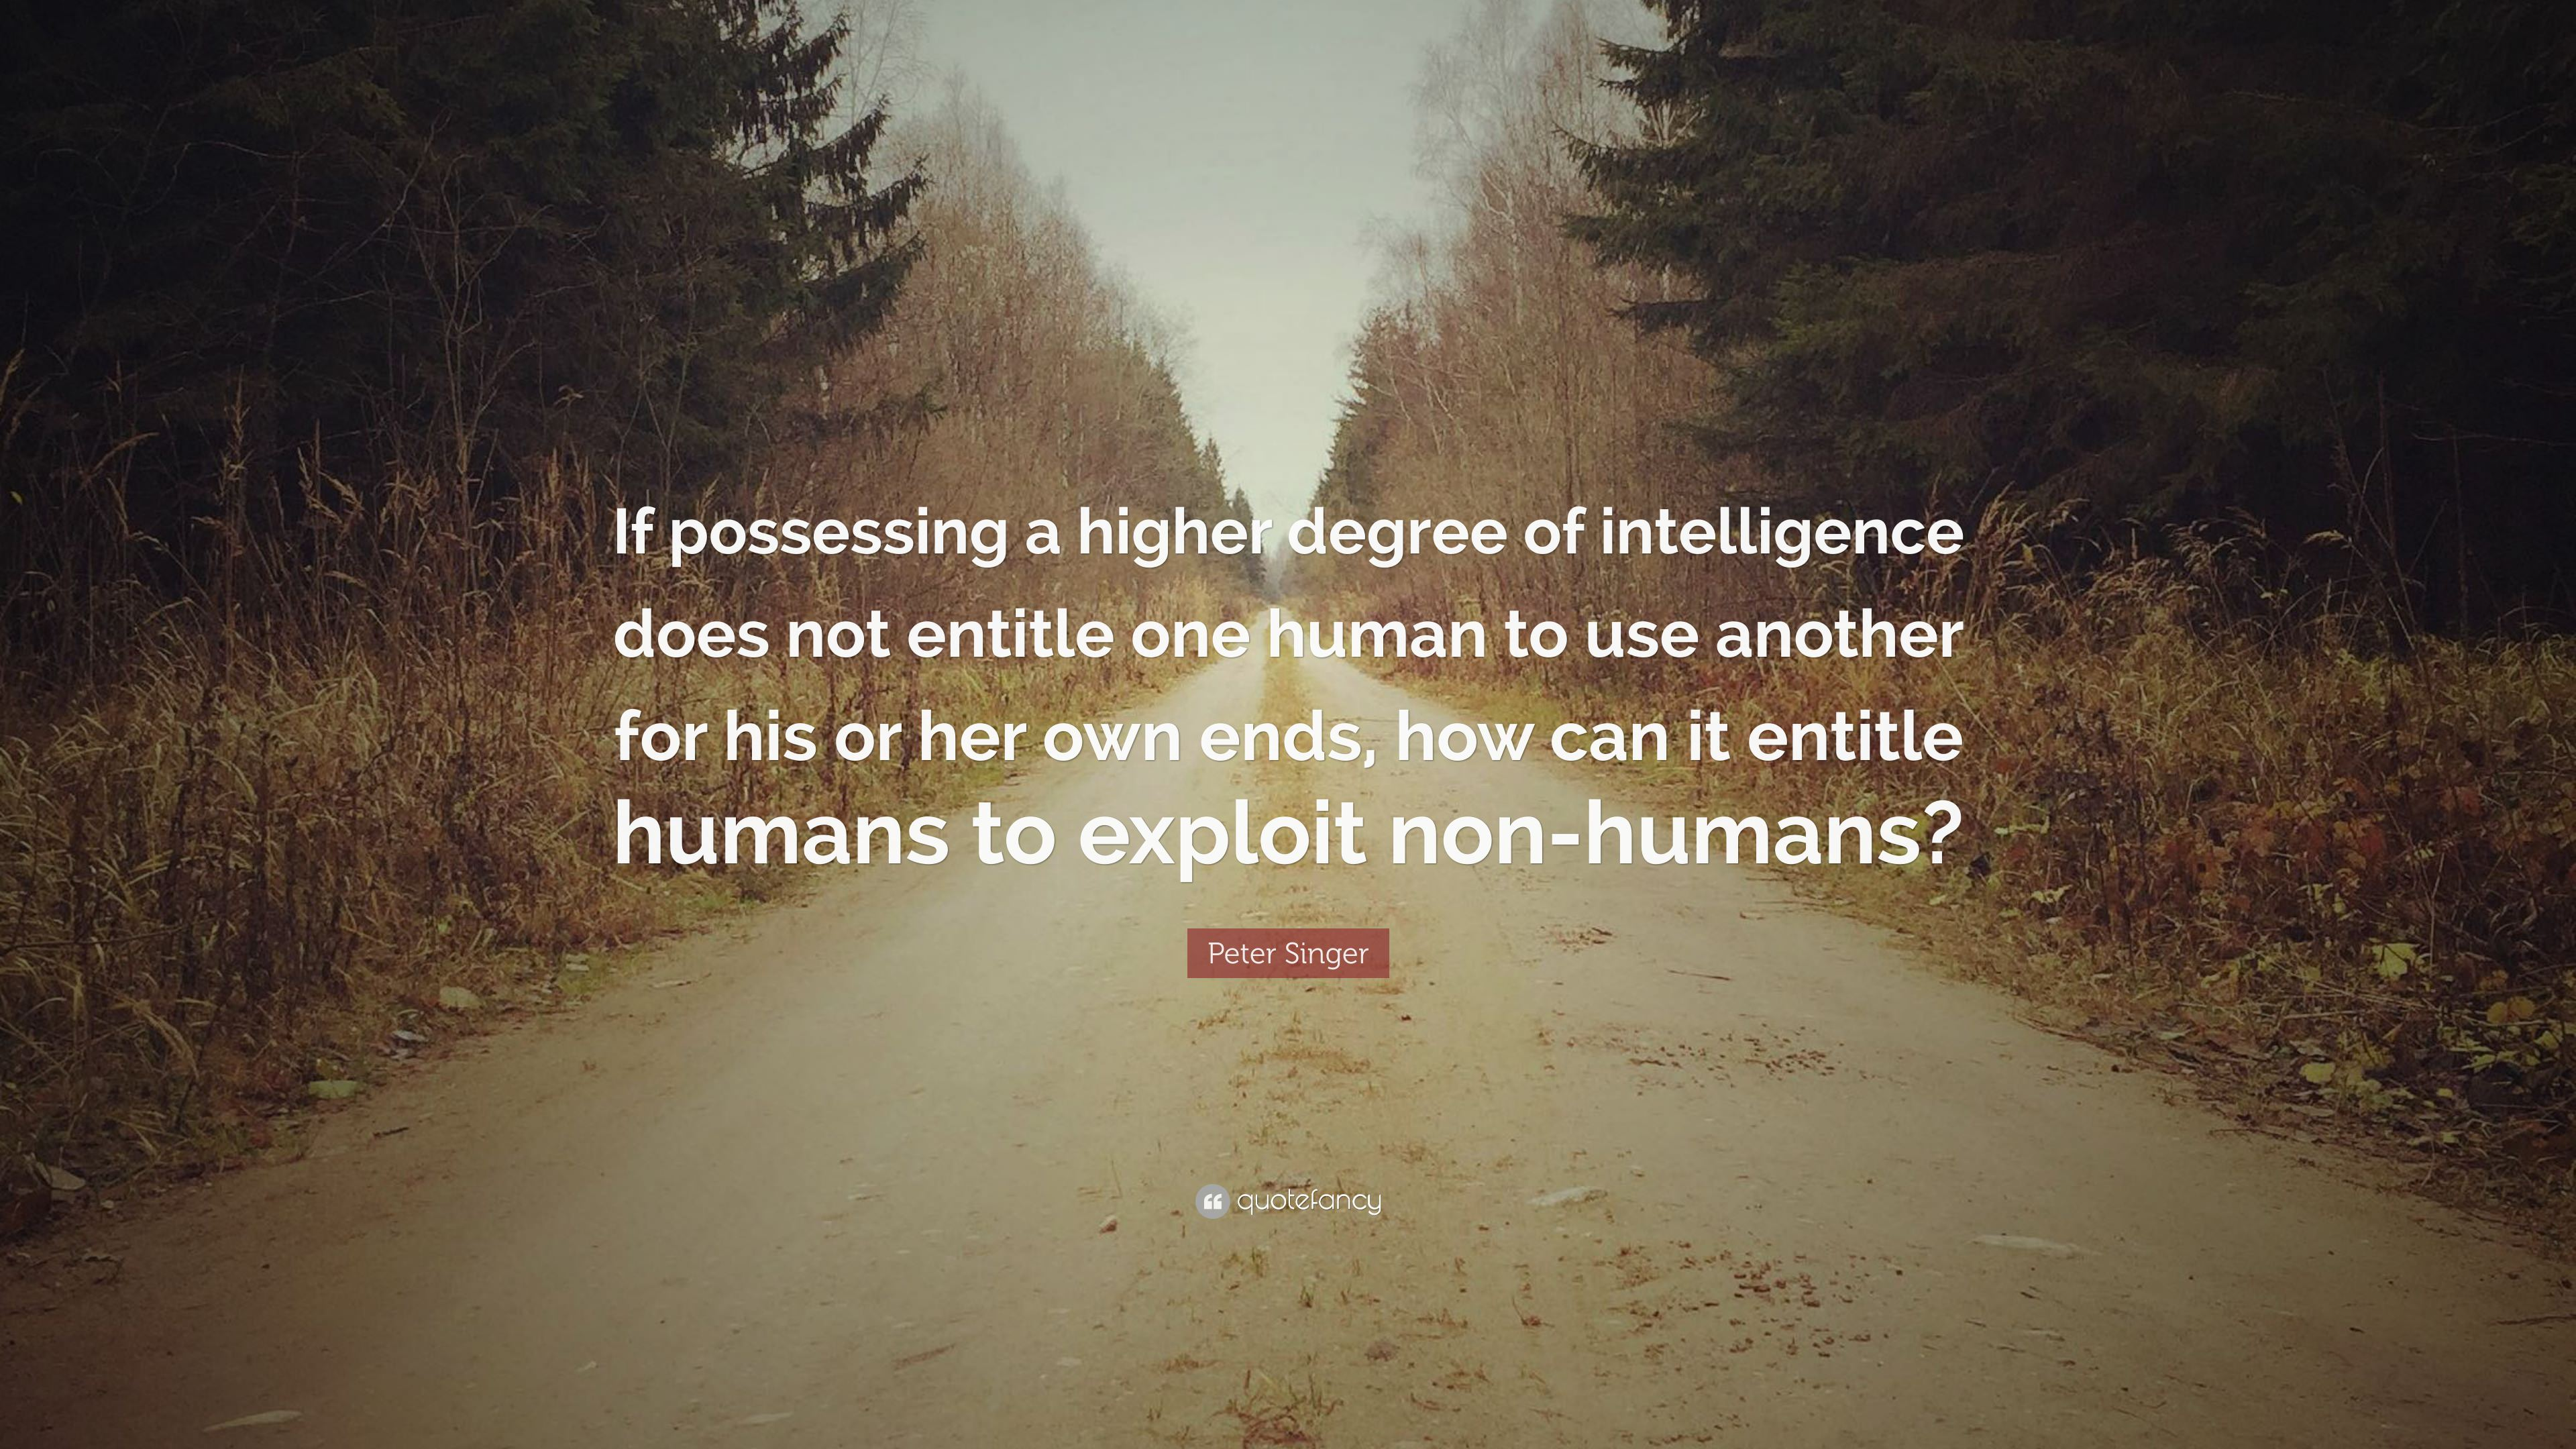 """If possessing a higher degree of intelligence does not entitle one human to use another for his or her own ends, how can it entitle humans to exploit non-humans?"" -Peter Singer [3840 x 2160]"